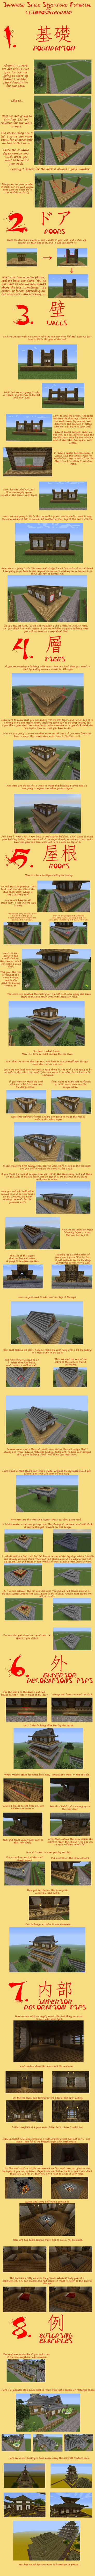 japanese_structure_tutorial_by_clintosthegreat-d4xd99z.jpg 500×13,625 pixels